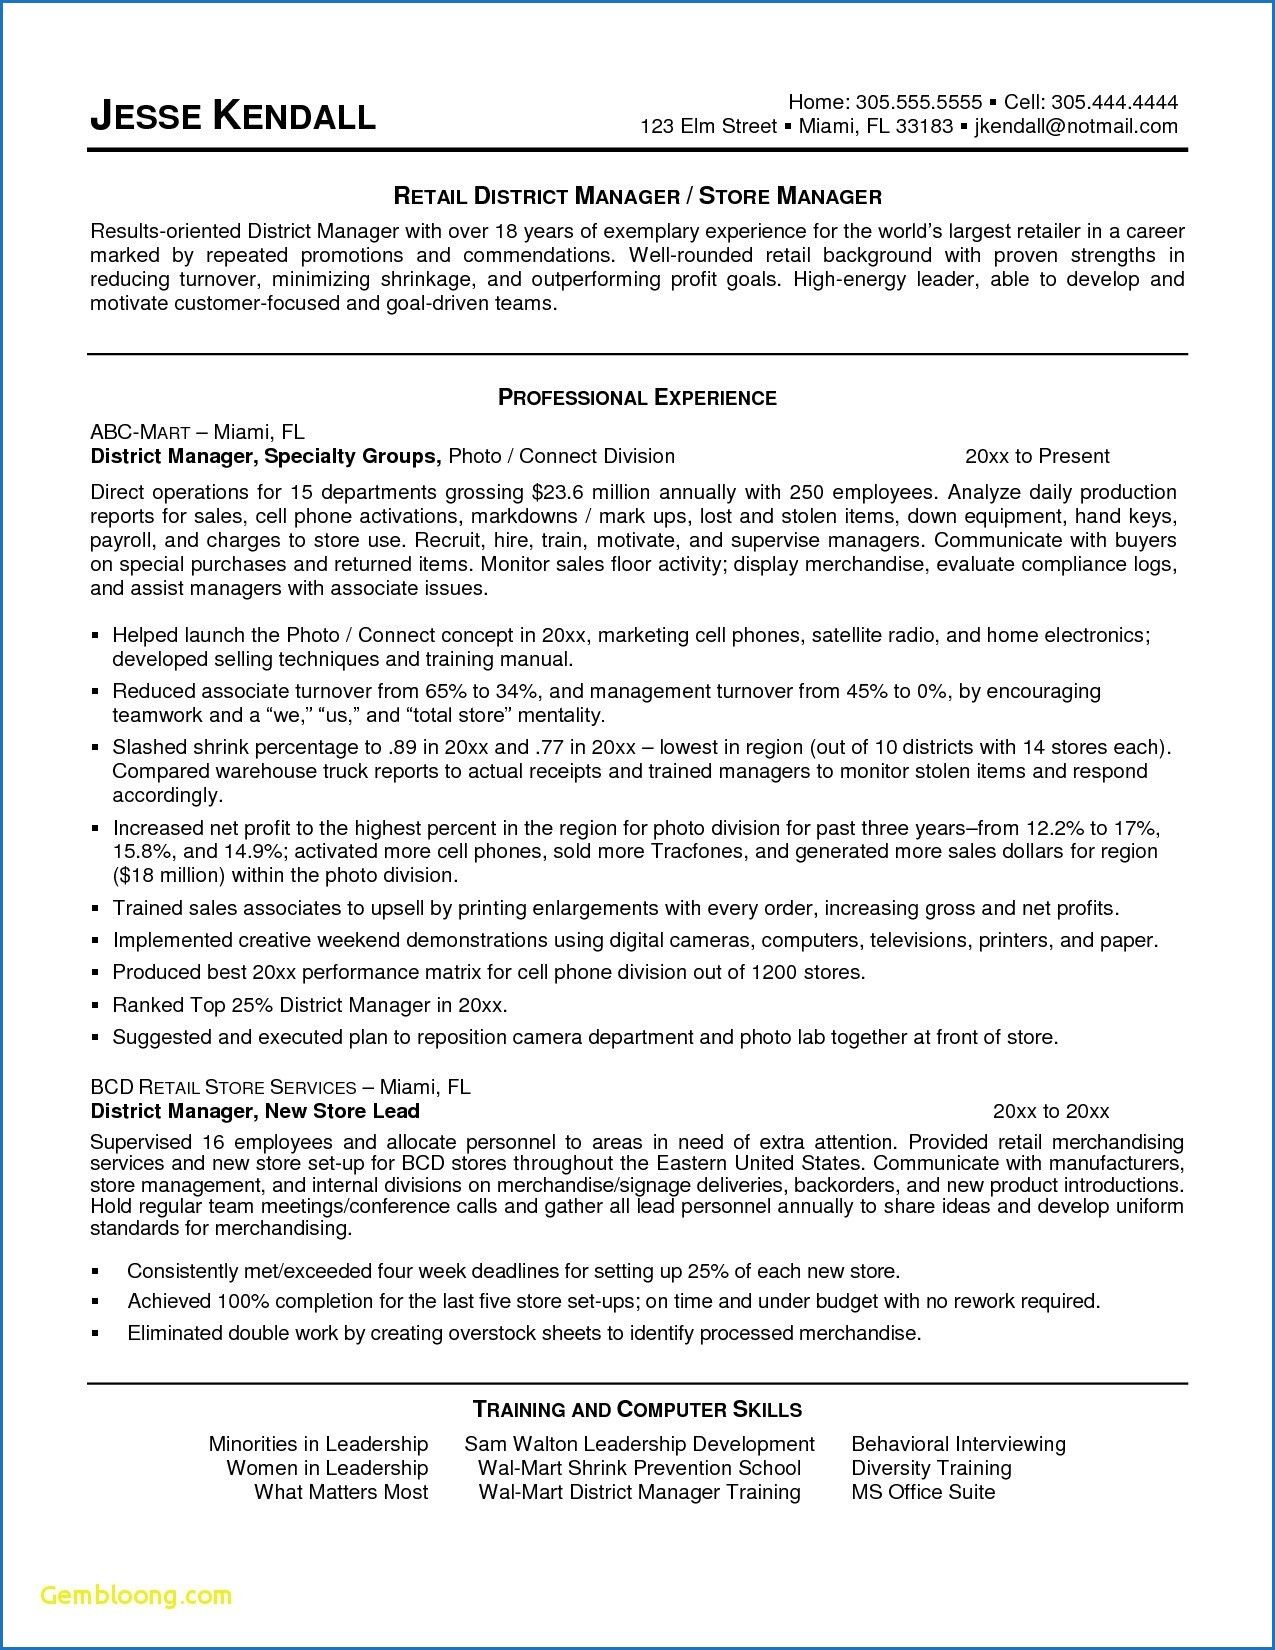 10 Warehouse Resume Examples And Samples Check More At Https Www Ortelle Org Warehouse Resume Examples And Samples